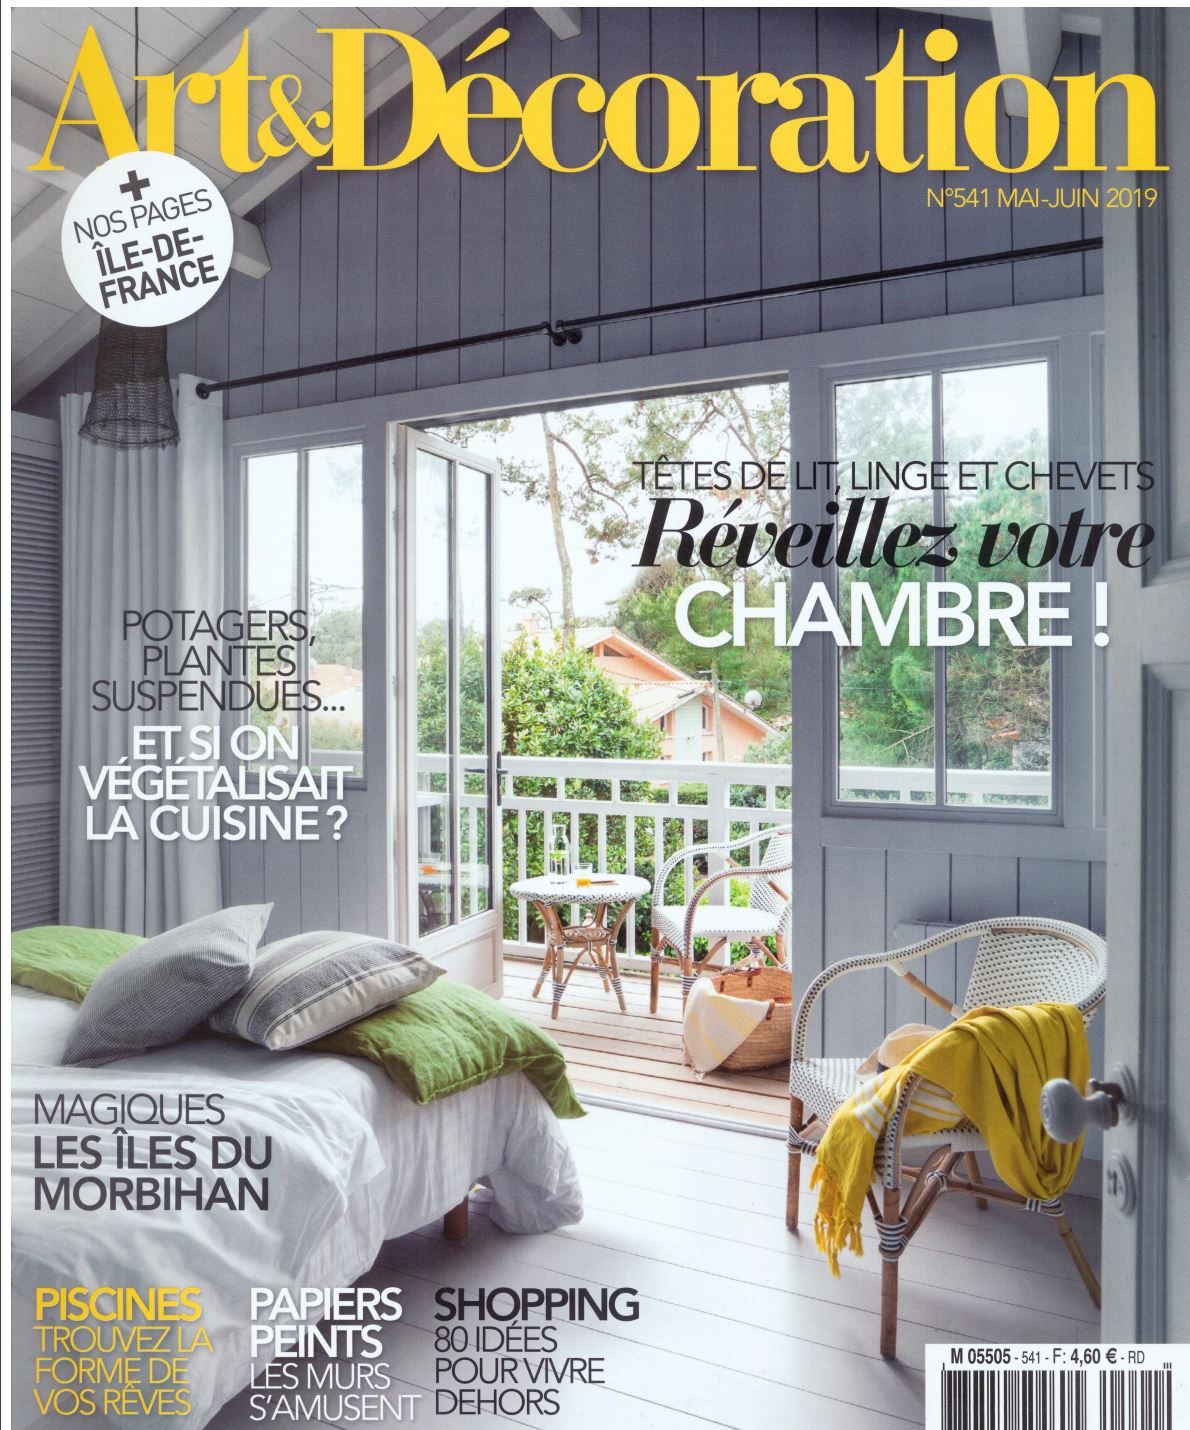 PARUTION - ART & DECORATION MAI JUIN 2019